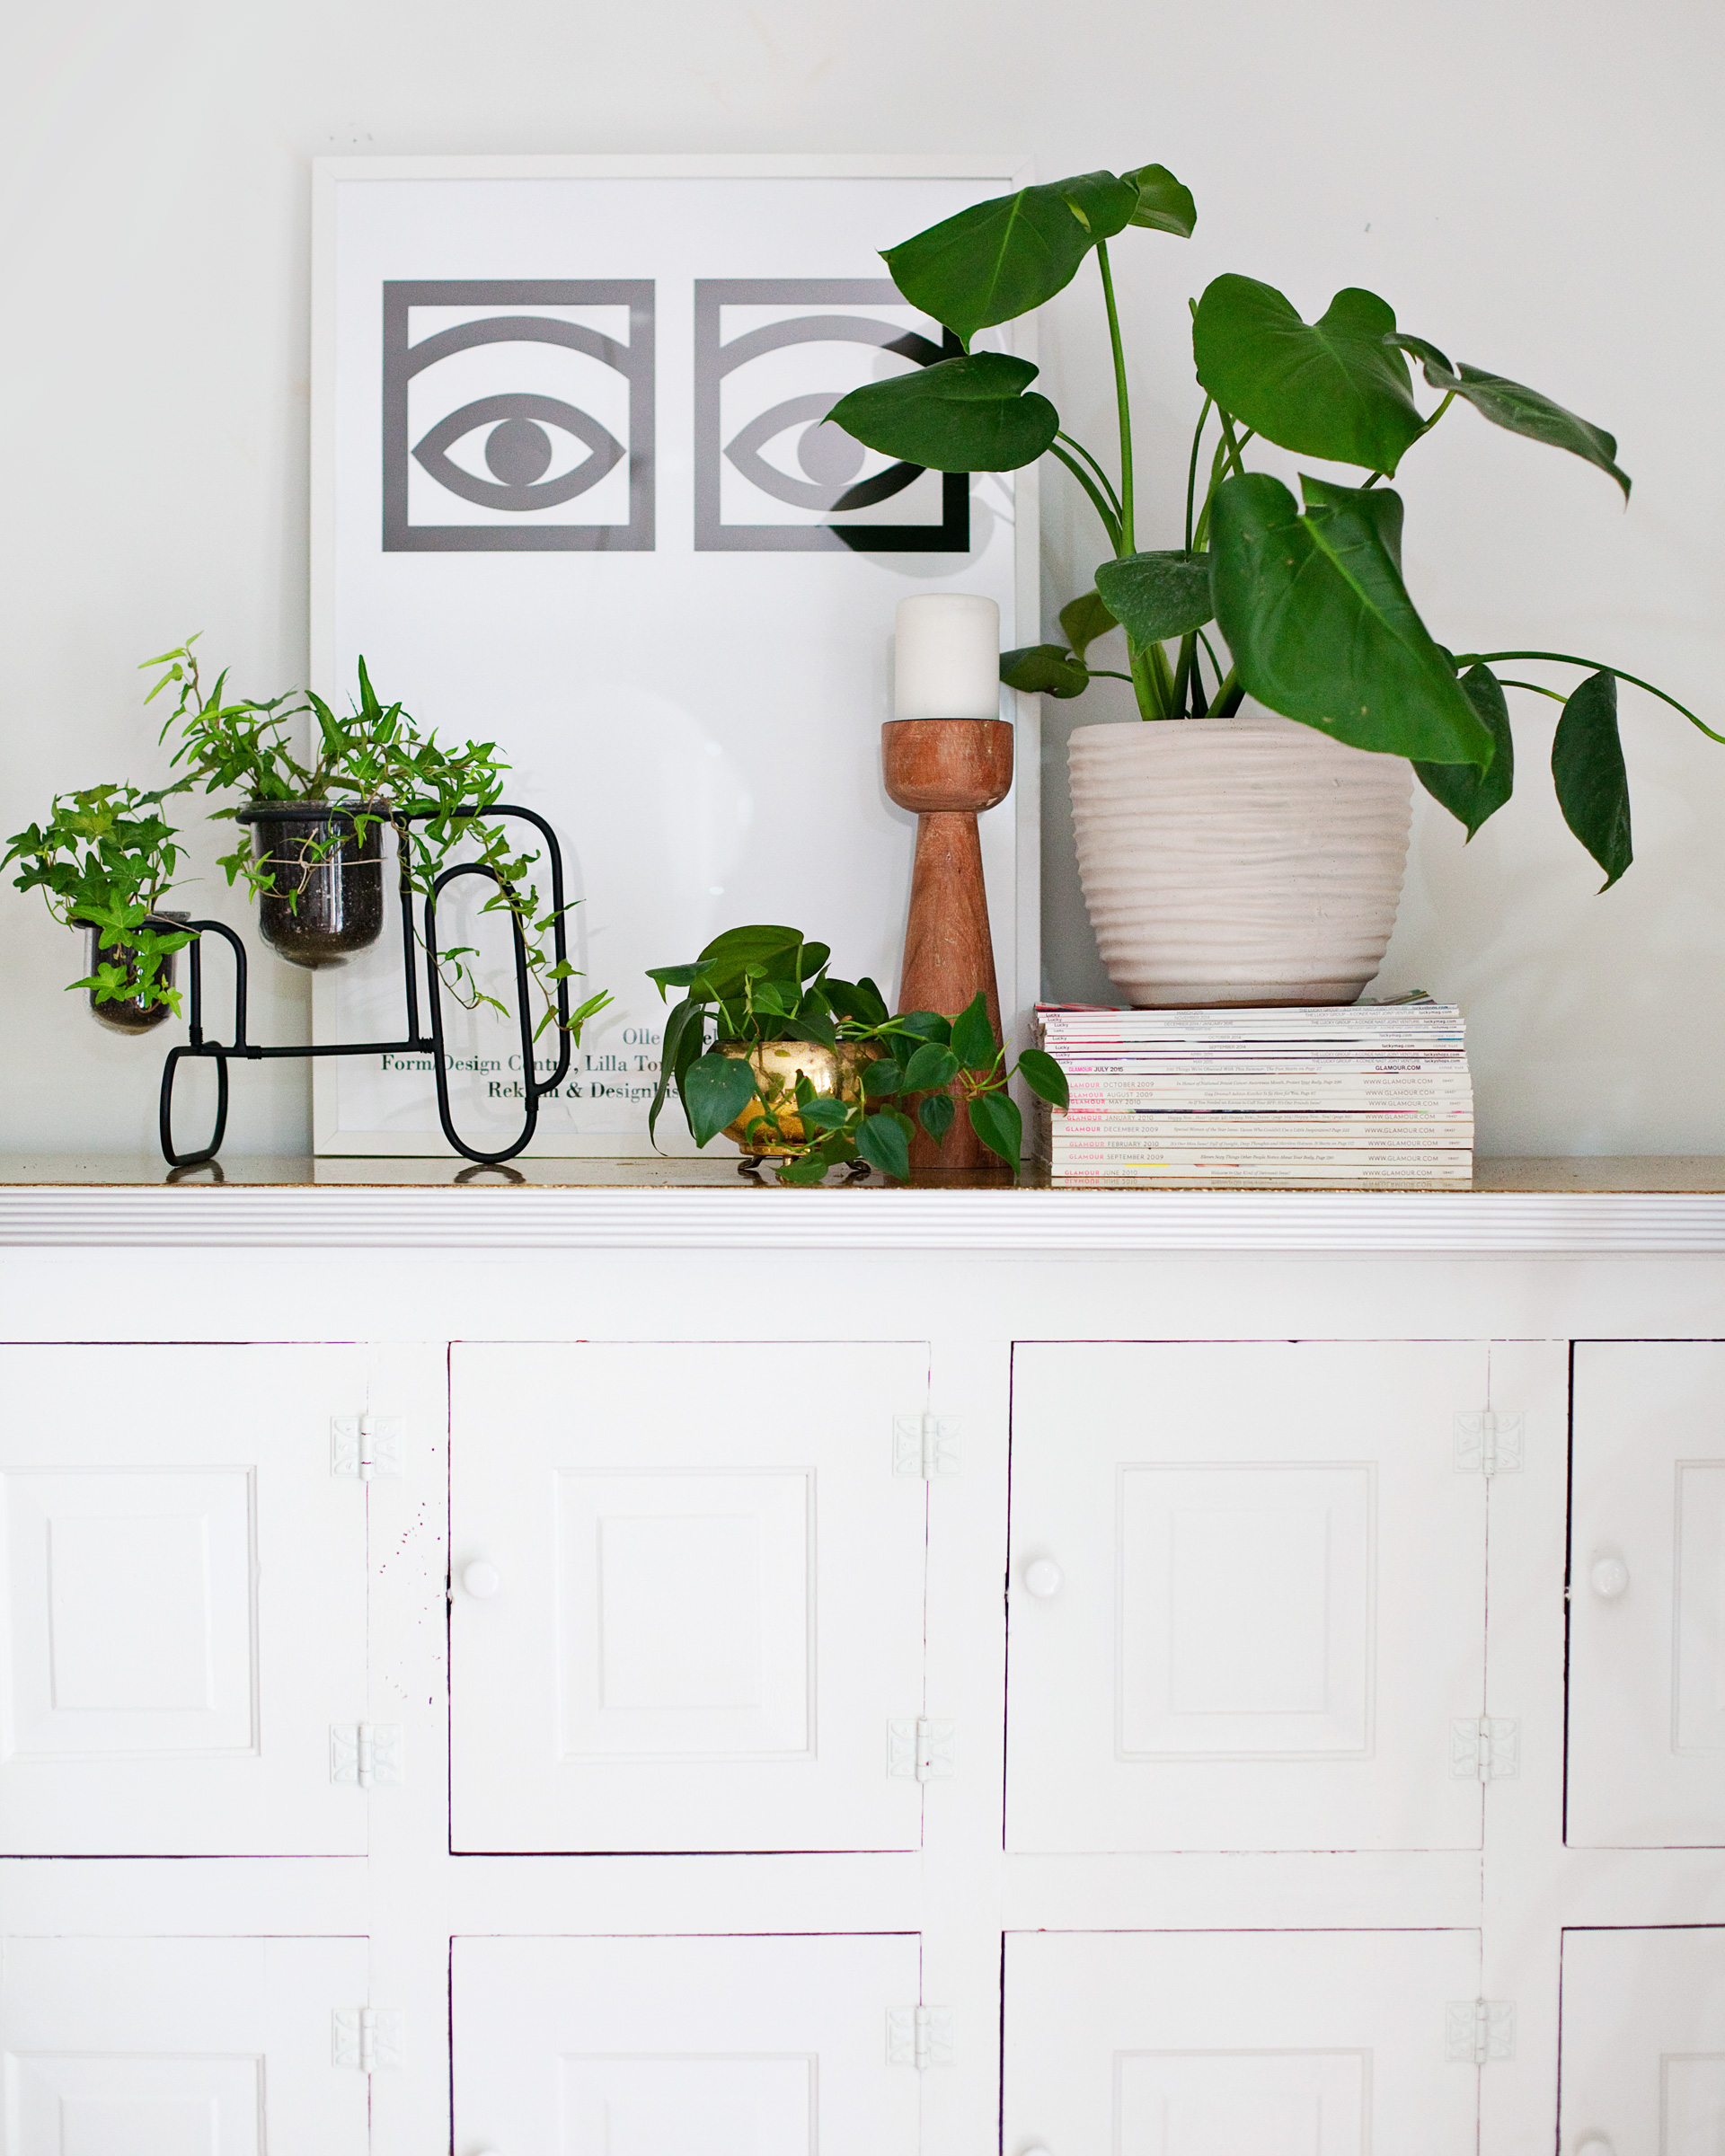 sideboard vignette with plants and candle holder